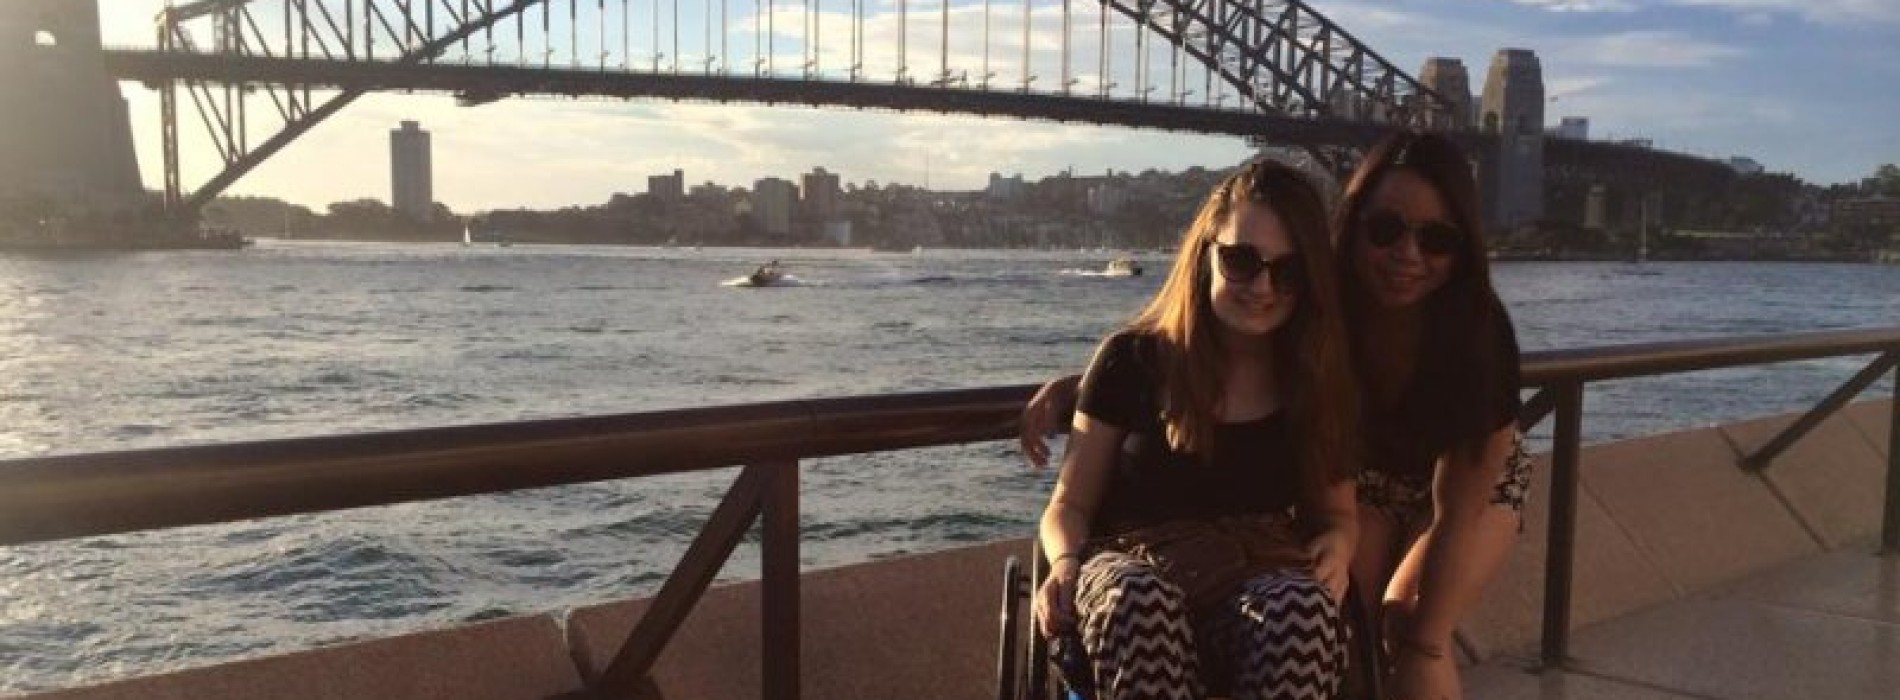 My perspective on inclusive study abroad